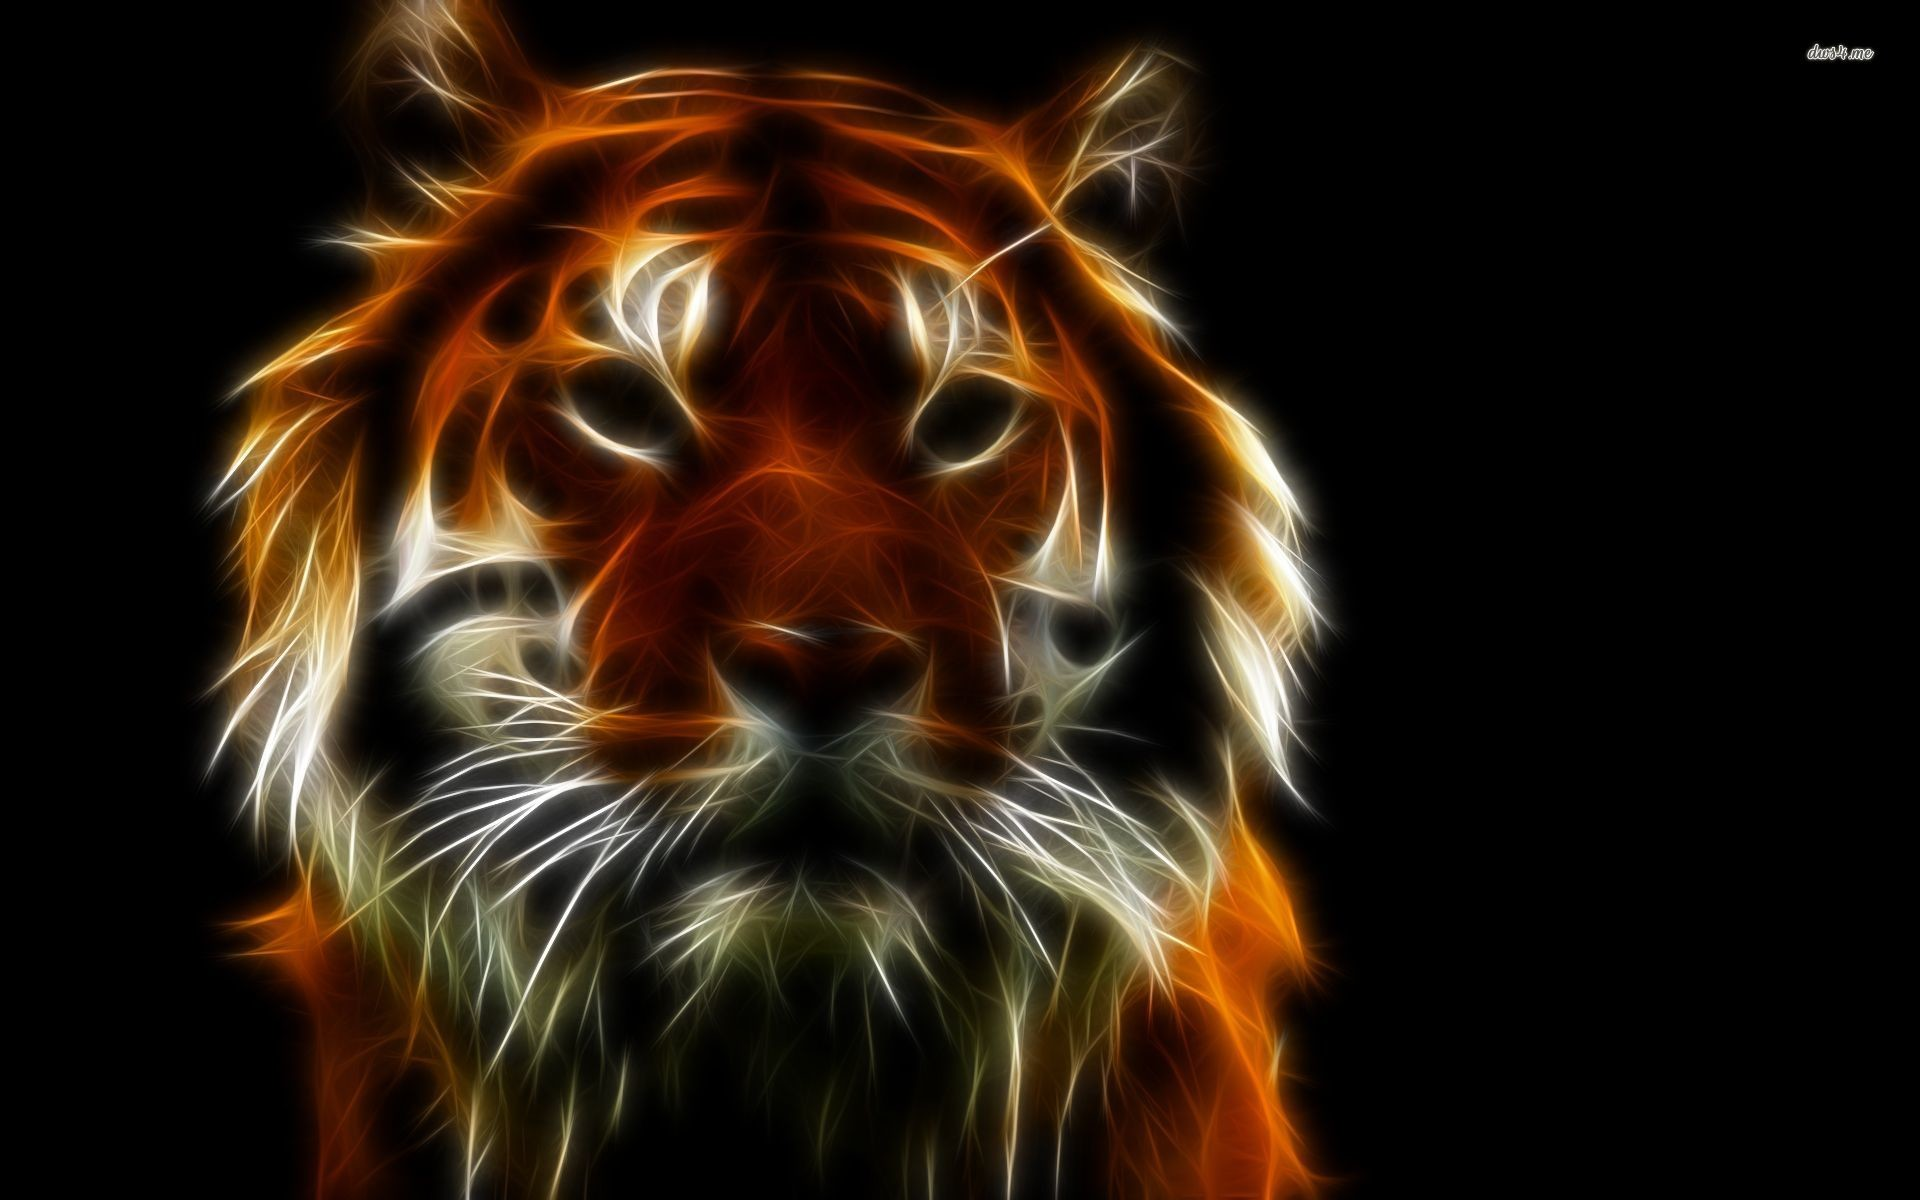 <b>Tiger Wallpaper</b> Group with 79 items